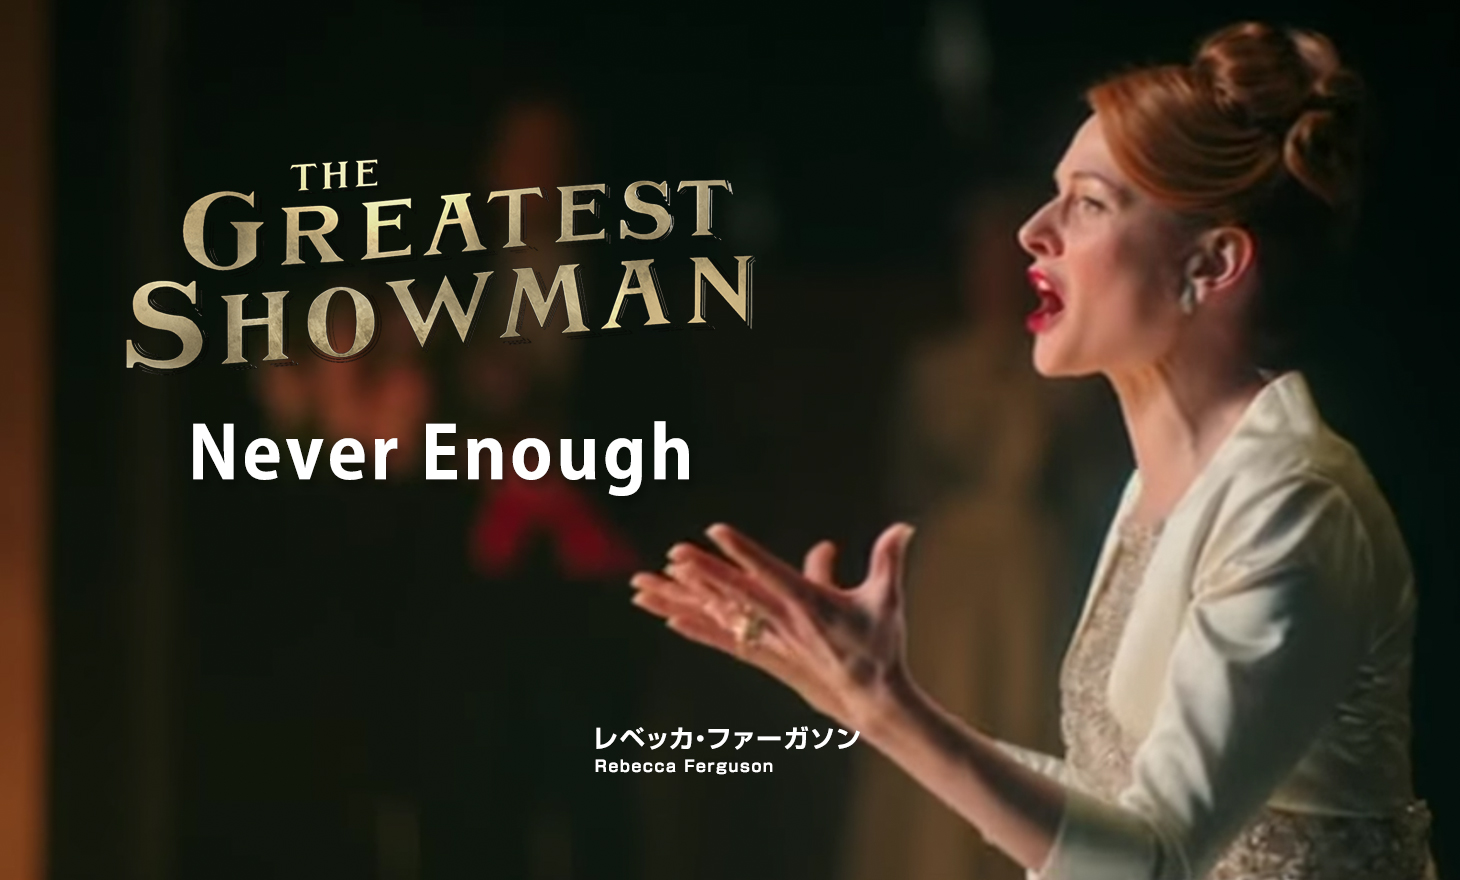 The Greatest Showman(グレイテスト・ショーマン):Never Enough